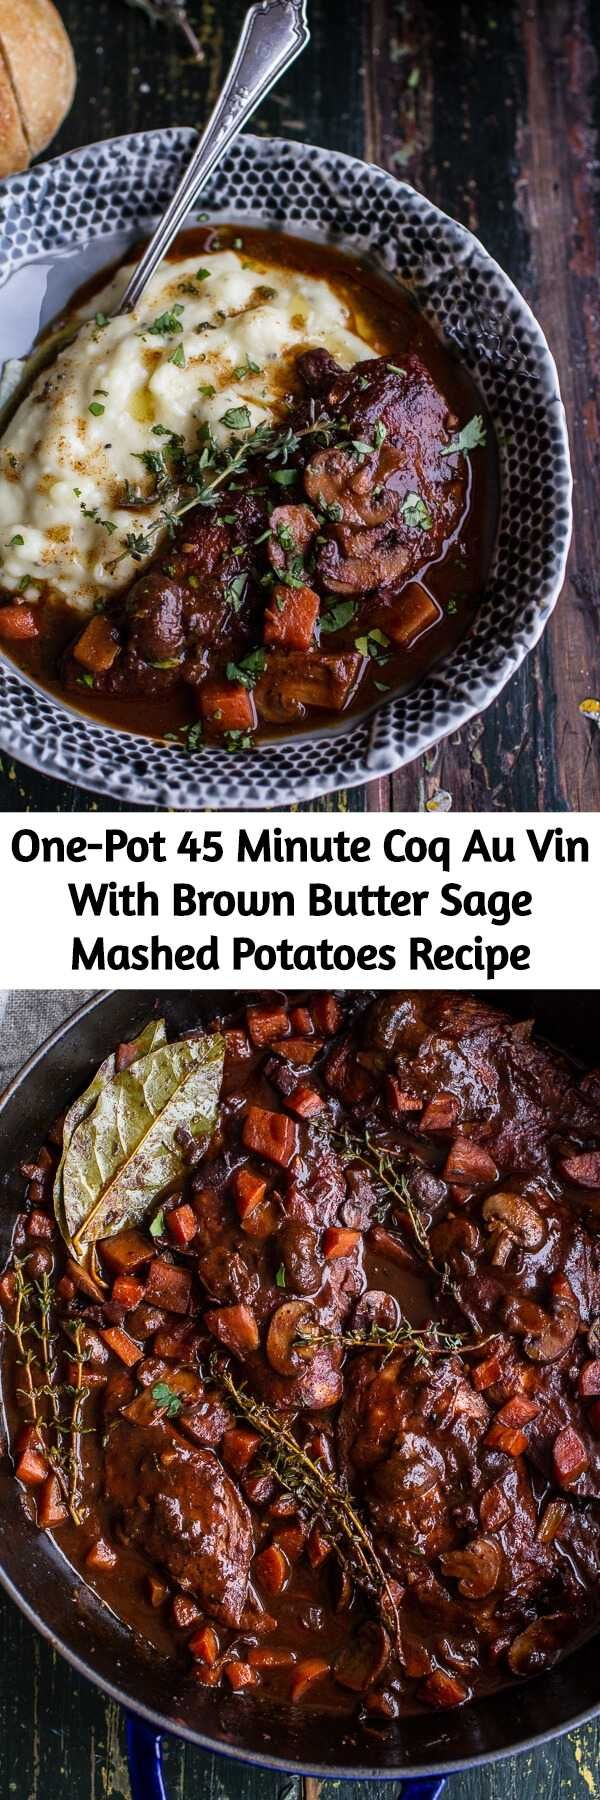 One-Pot 45 Minute Coq Au Vin With Brown Butter Sage Mashed Potatoes Recipe